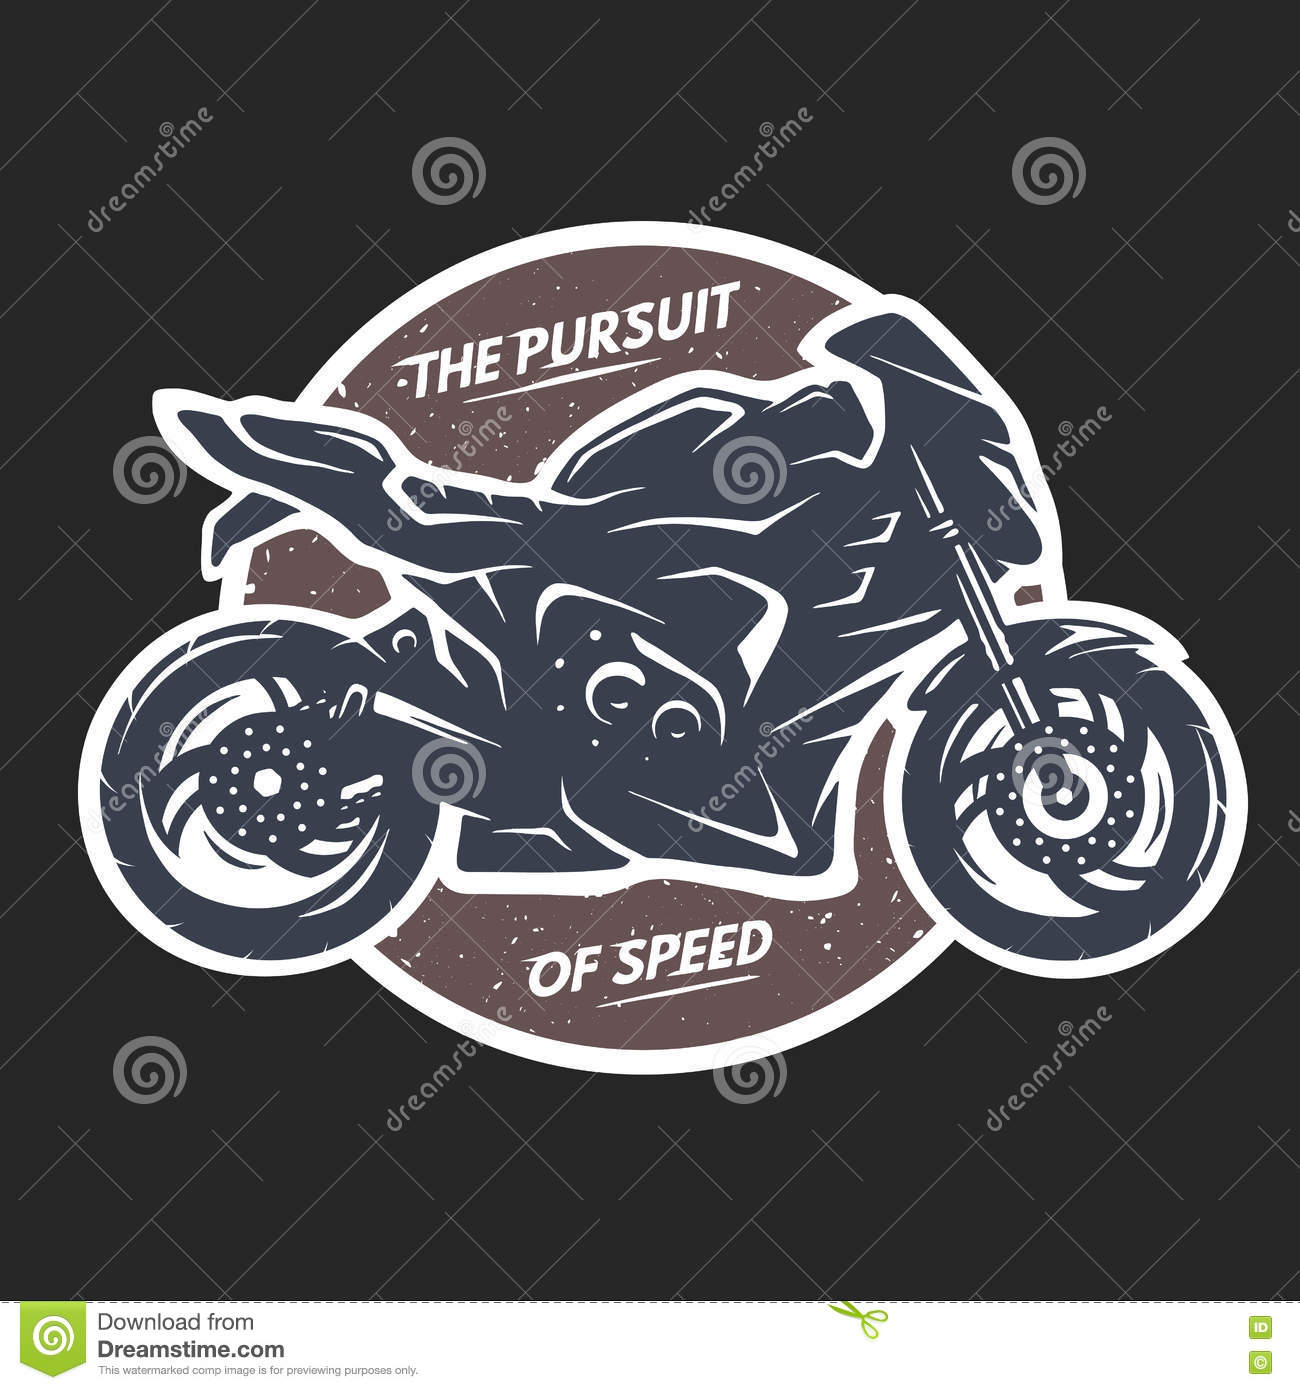 9c4f70d6a Sport superbike motorcycle Emblem t-shirt design. Vector illustration.  Designers Also Selected These Stock Illustrations. Motorcycle royalty free  ...